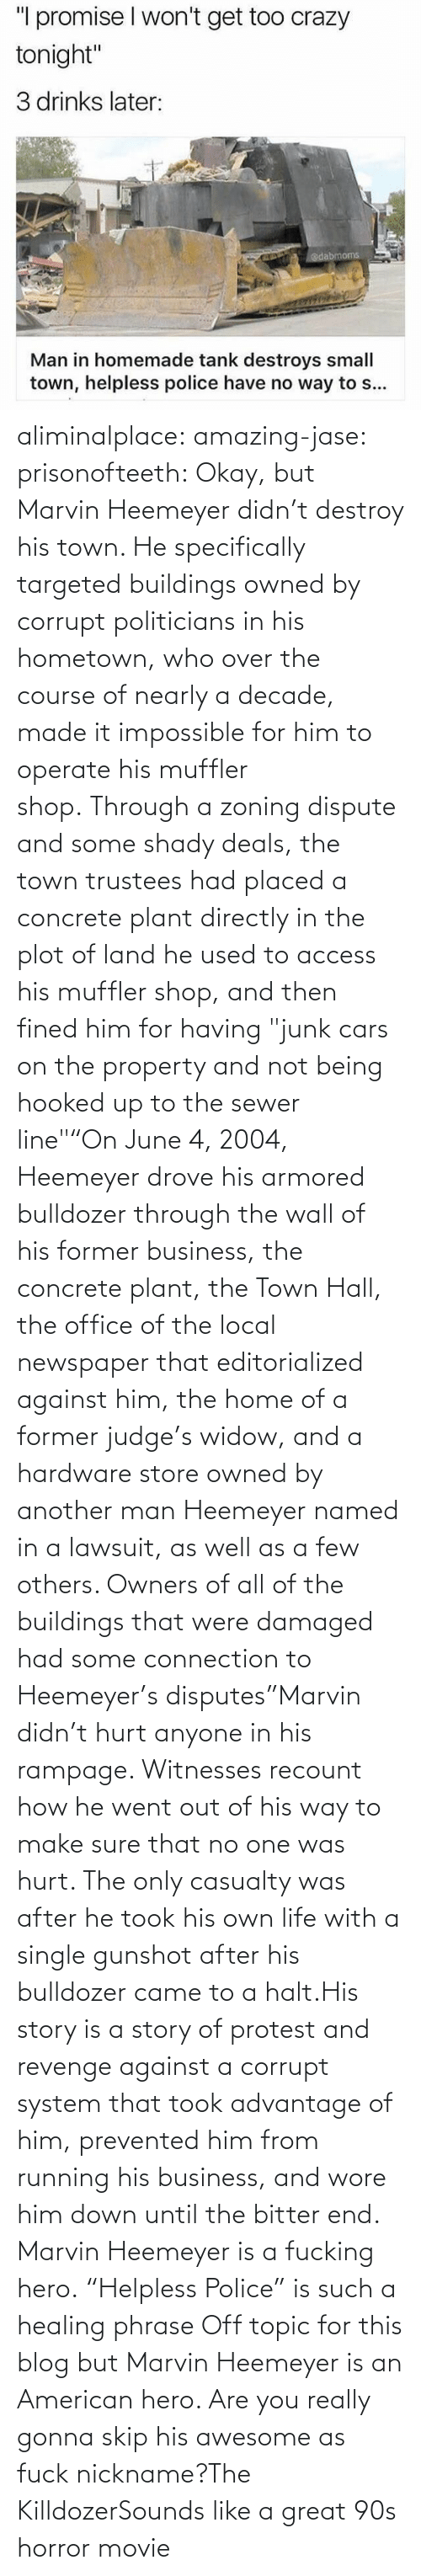 "Advantage: aliminalplace: amazing-jase:  prisonofteeth: Okay, but Marvin Heemeyer didn't destroy his town. He specifically targeted buildings owned by corrupt politicians in his hometown, who over the course of nearly a decade, made it impossible for him to operate his muffler shop. Through a zoning dispute and some shady deals, the town trustees had placed a concrete plant directly in the plot of land he used to access his muffler shop, and then fined him for having ""junk cars on the property and not being hooked up to the sewer line""""On June 4, 2004, Heemeyer drove his armored bulldozer through the wall of his former business, the concrete plant, the Town Hall, the office of the local newspaper that editorialized against him, the home of a former judge's widow, and a hardware store owned by another man Heemeyer named in a lawsuit, as well as a few others. Owners of all of the buildings that were damaged had some connection to Heemeyer's disputes""Marvin didn't hurt anyone in his rampage. Witnesses recount how he went out of his way to make sure that no one was hurt. The only casualty was after he took his own life with a single gunshot after his bulldozer came to a halt.His story is a story of protest and revenge against a corrupt system that took advantage of him, prevented him from running his business, and wore him down until the bitter end. Marvin Heemeyer is a fucking hero. ""Helpless Police"" is such a healing phrase    Off topic for this blog but Marvin Heemeyer is an American hero.     Are you really gonna skip his awesome as fuck nickname?The KilldozerSounds like a great 90s horror movie"